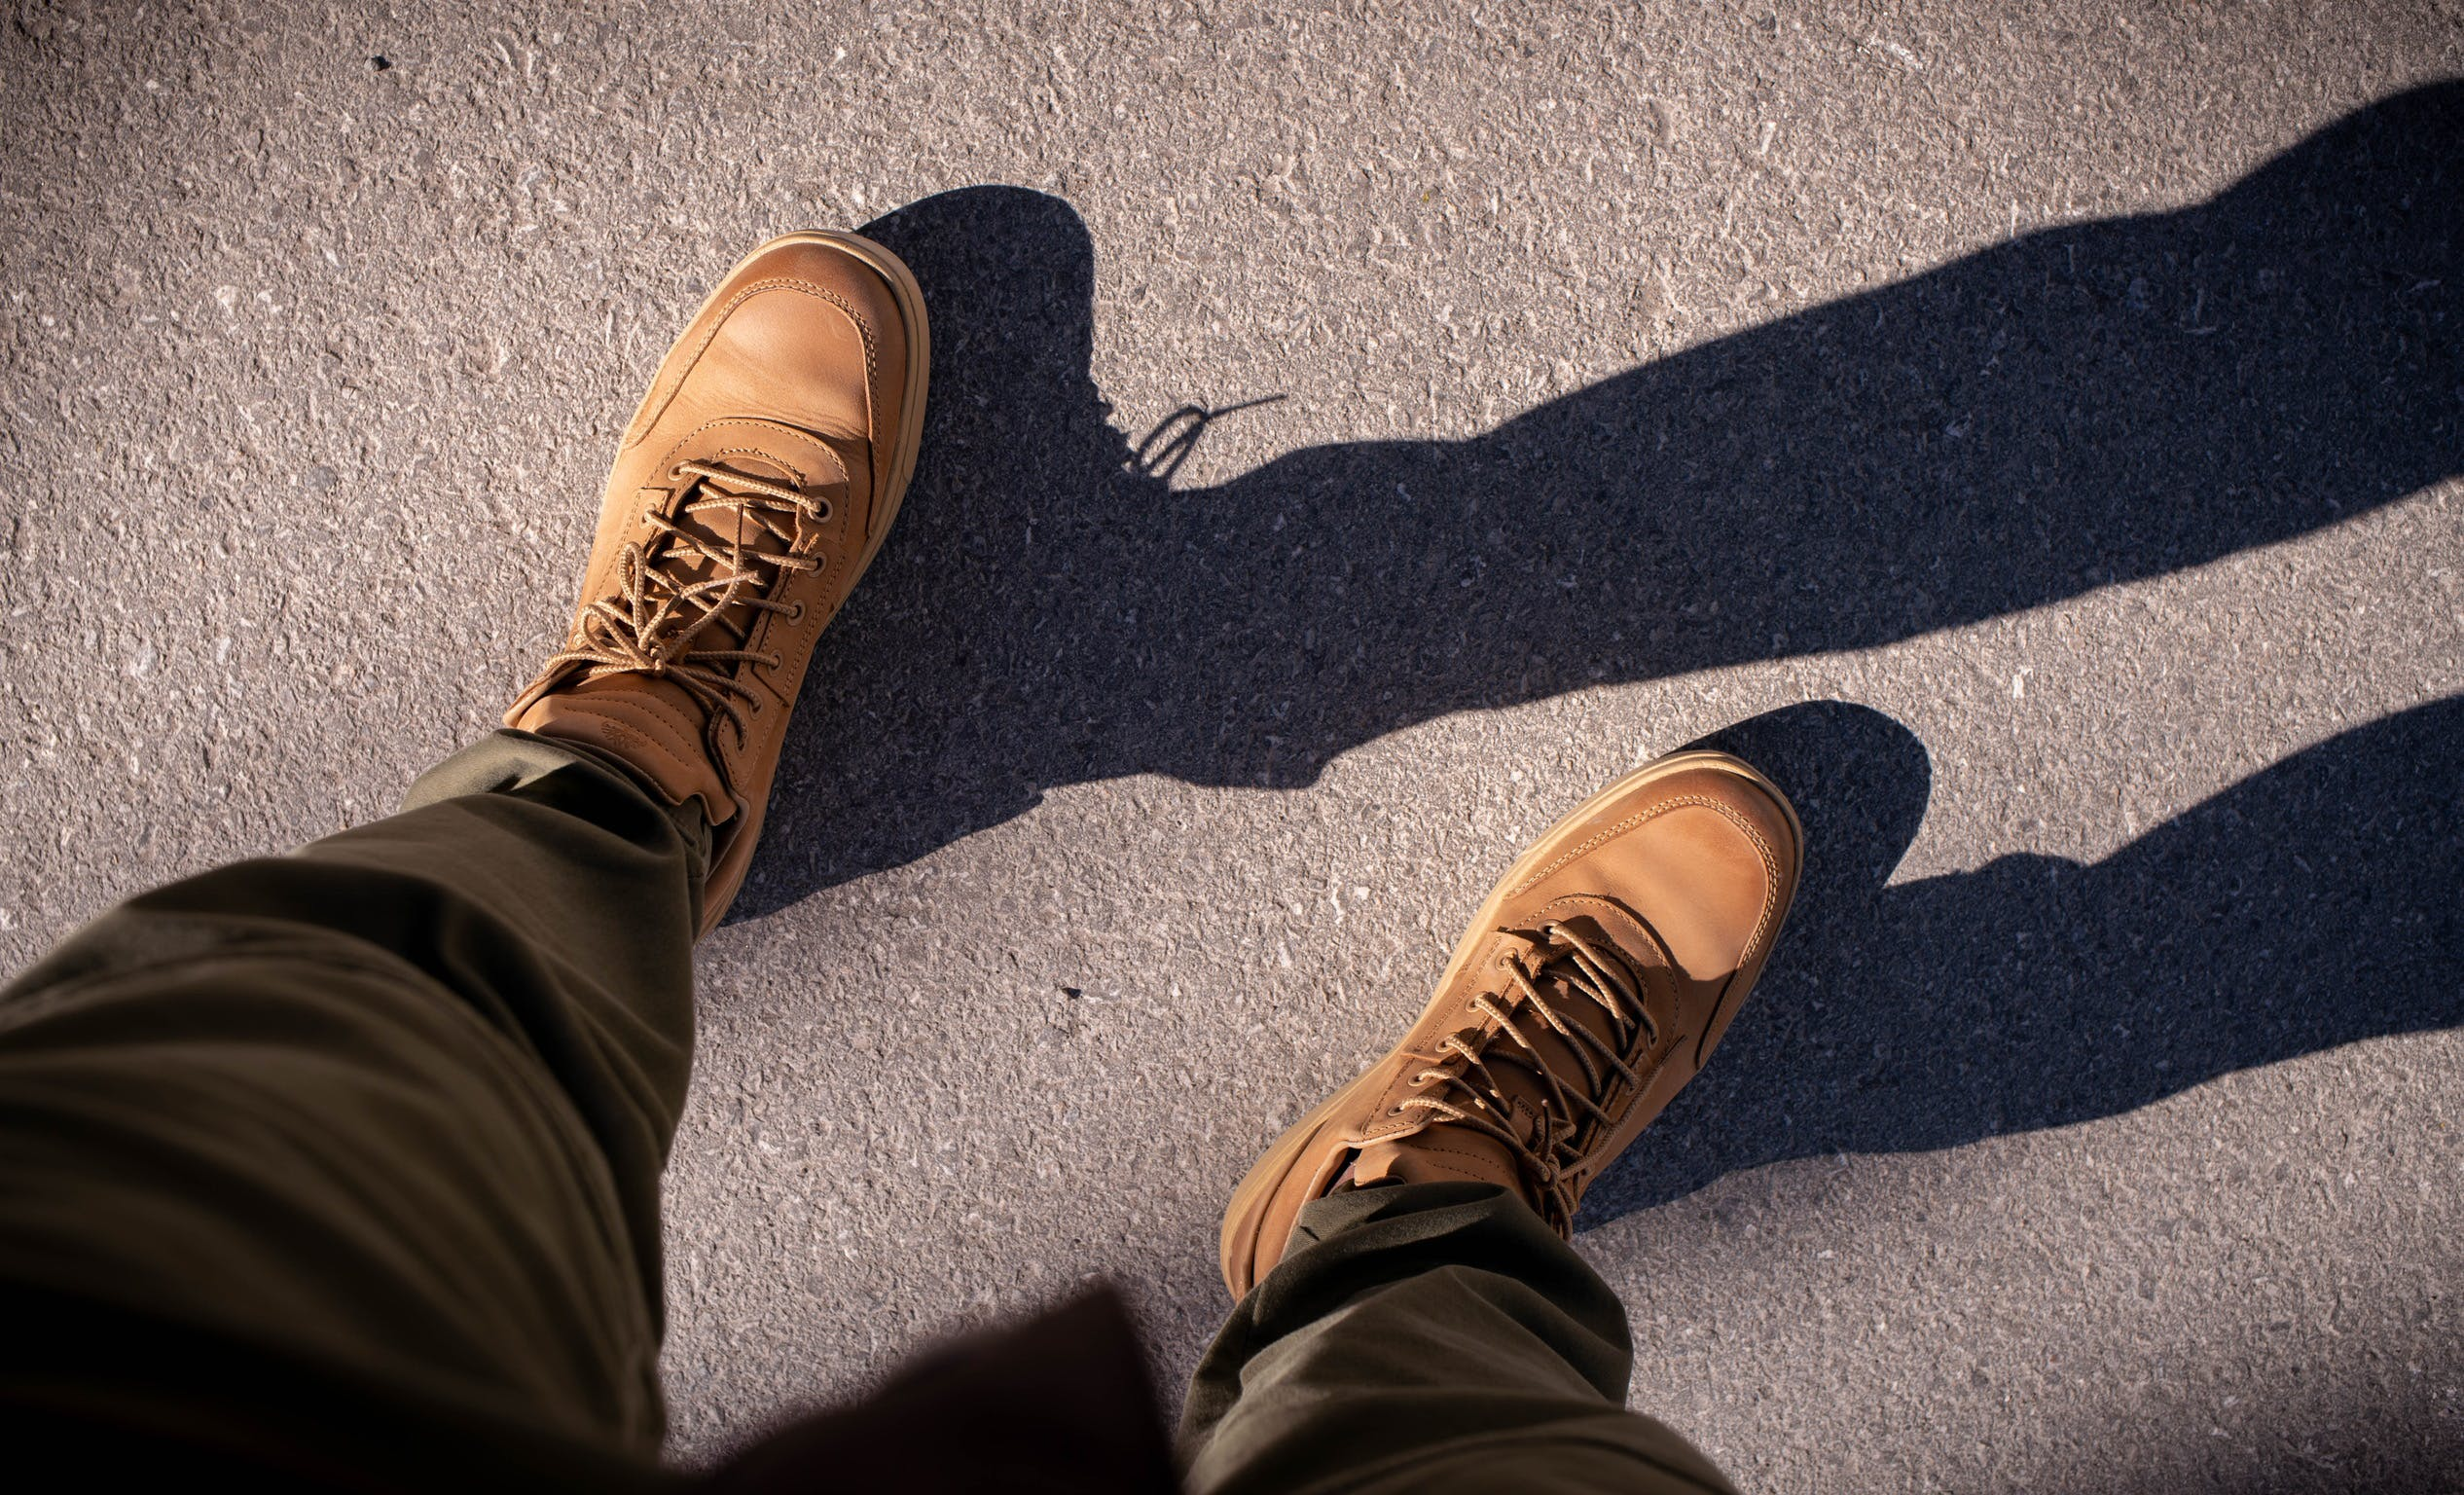 Free stock photo of legs, shoes, shadow, stand